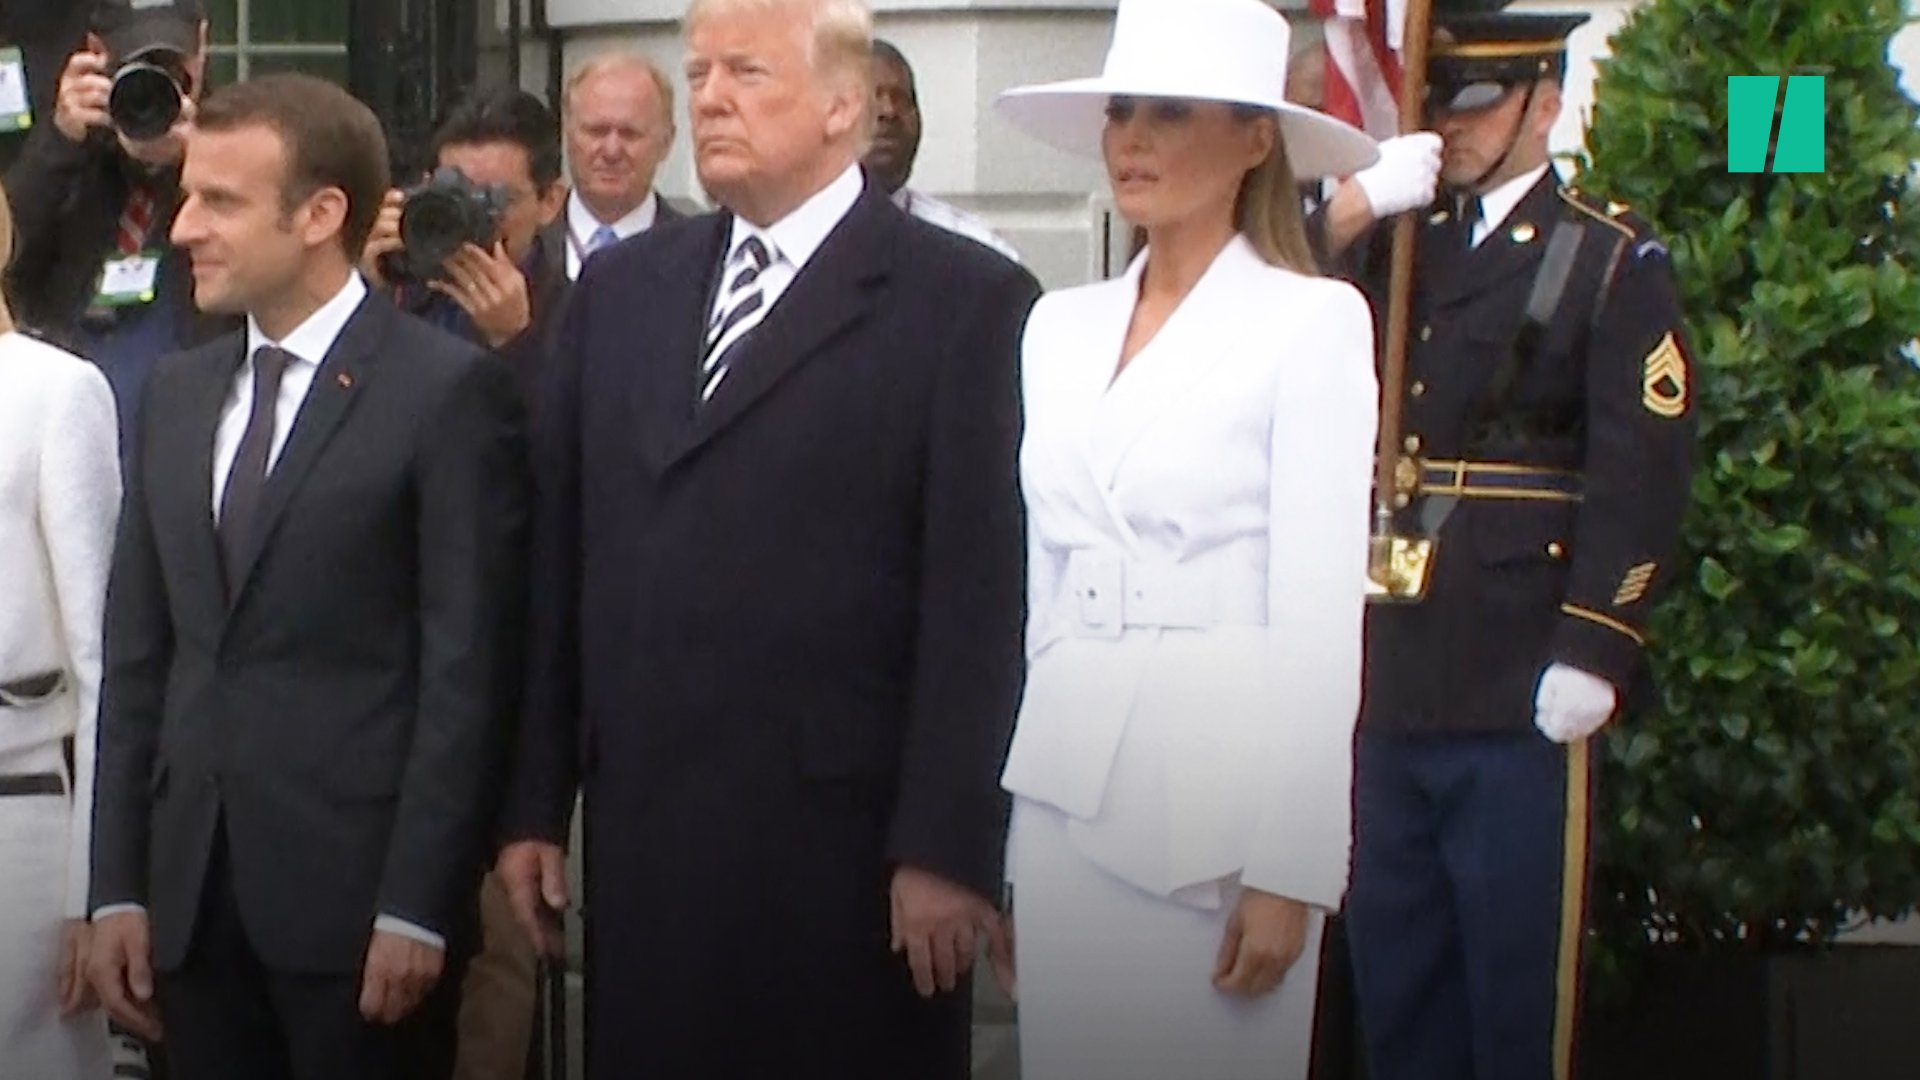 We saw the return of Melania brushing off her husband's hand AND Trump's bizarre handshake all in one day. https://t.co/38KoH0OZDl